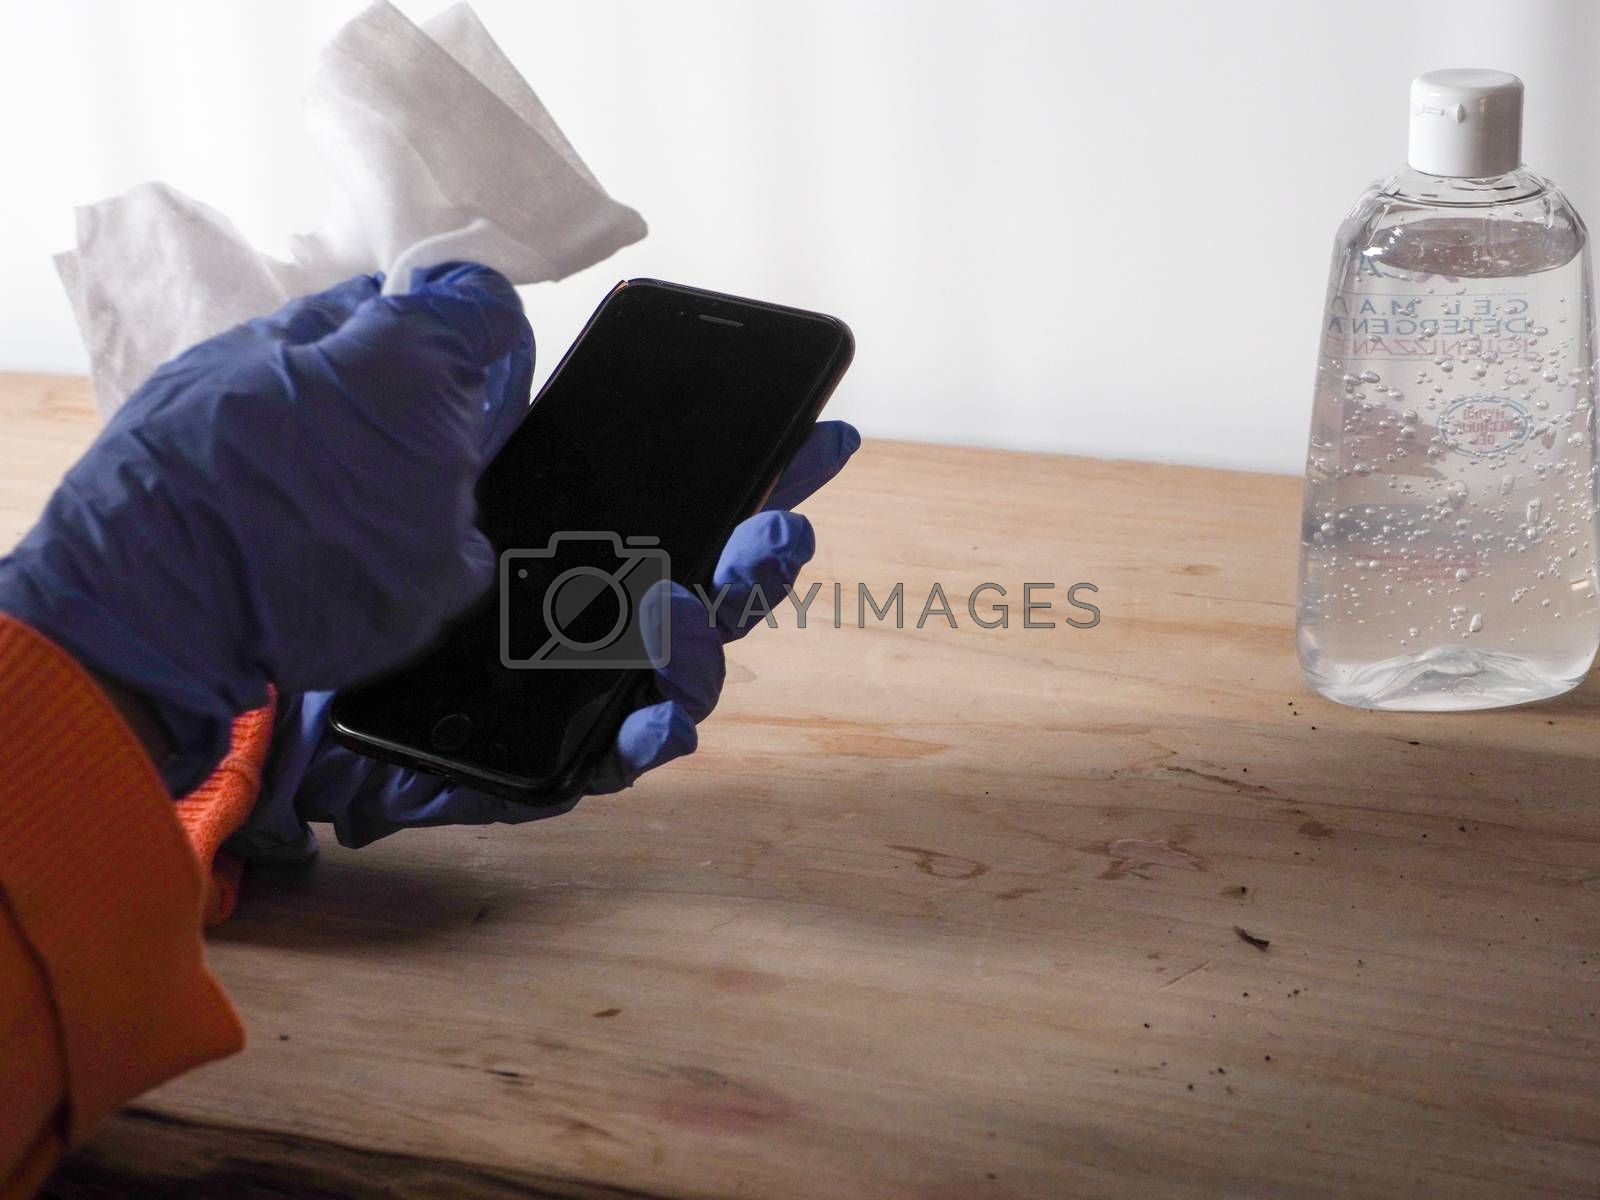 close up of  woman hands wearing blue gloves while cleaning and sanitizing  smartphone  with anti virus bacterial gel against covid-19 , fall dress, orange color over a wood table, earth tones, white background and a gel bottle.